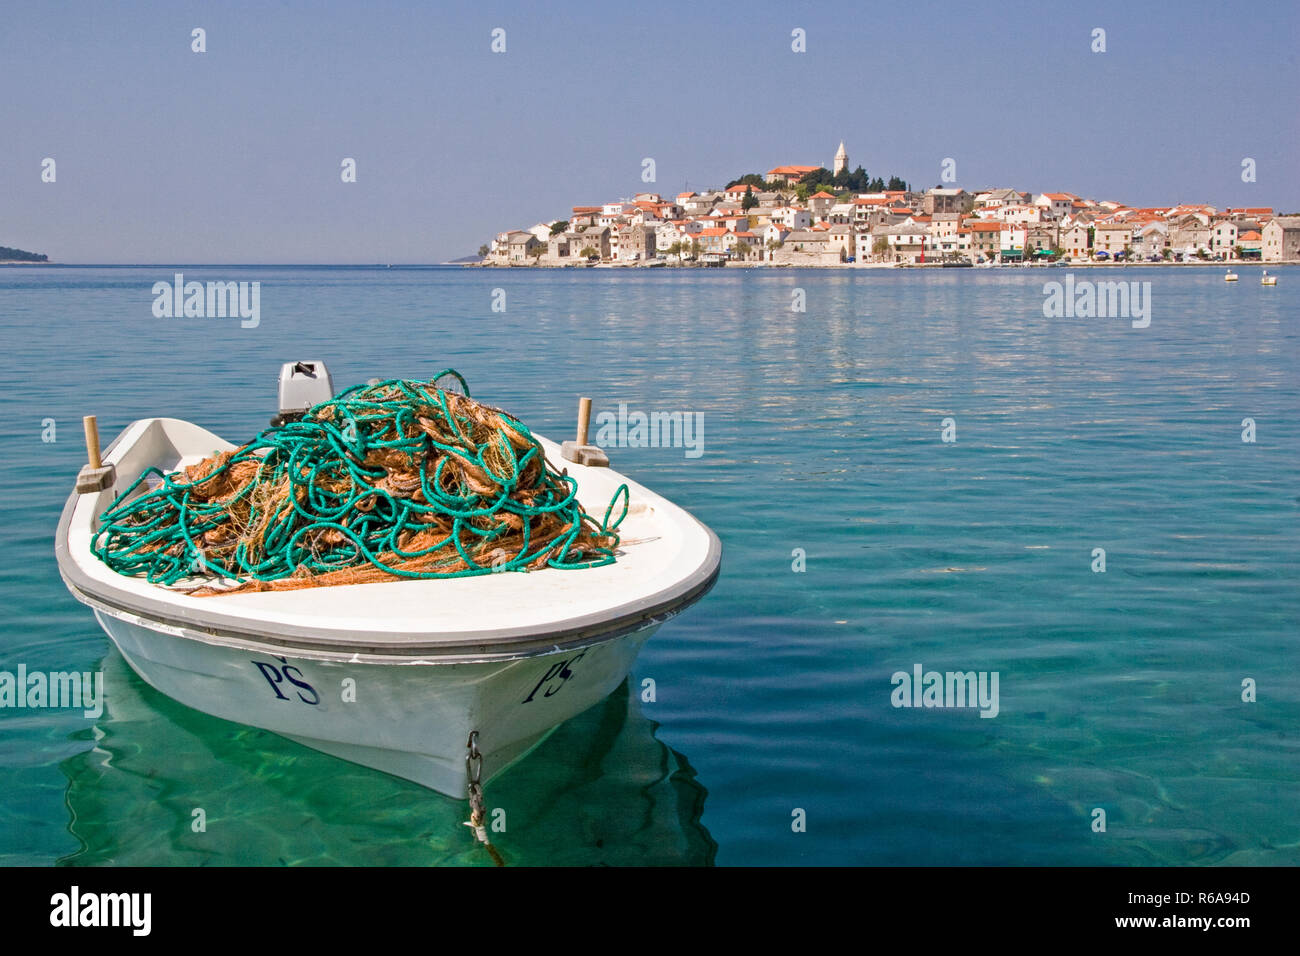 Fishing Boat In Front Of The Small Idyllic Fishing Village Primosten, Which Is Picturesquely Situated On A Peninsula And Often Referred To As The Pear - Stock Image